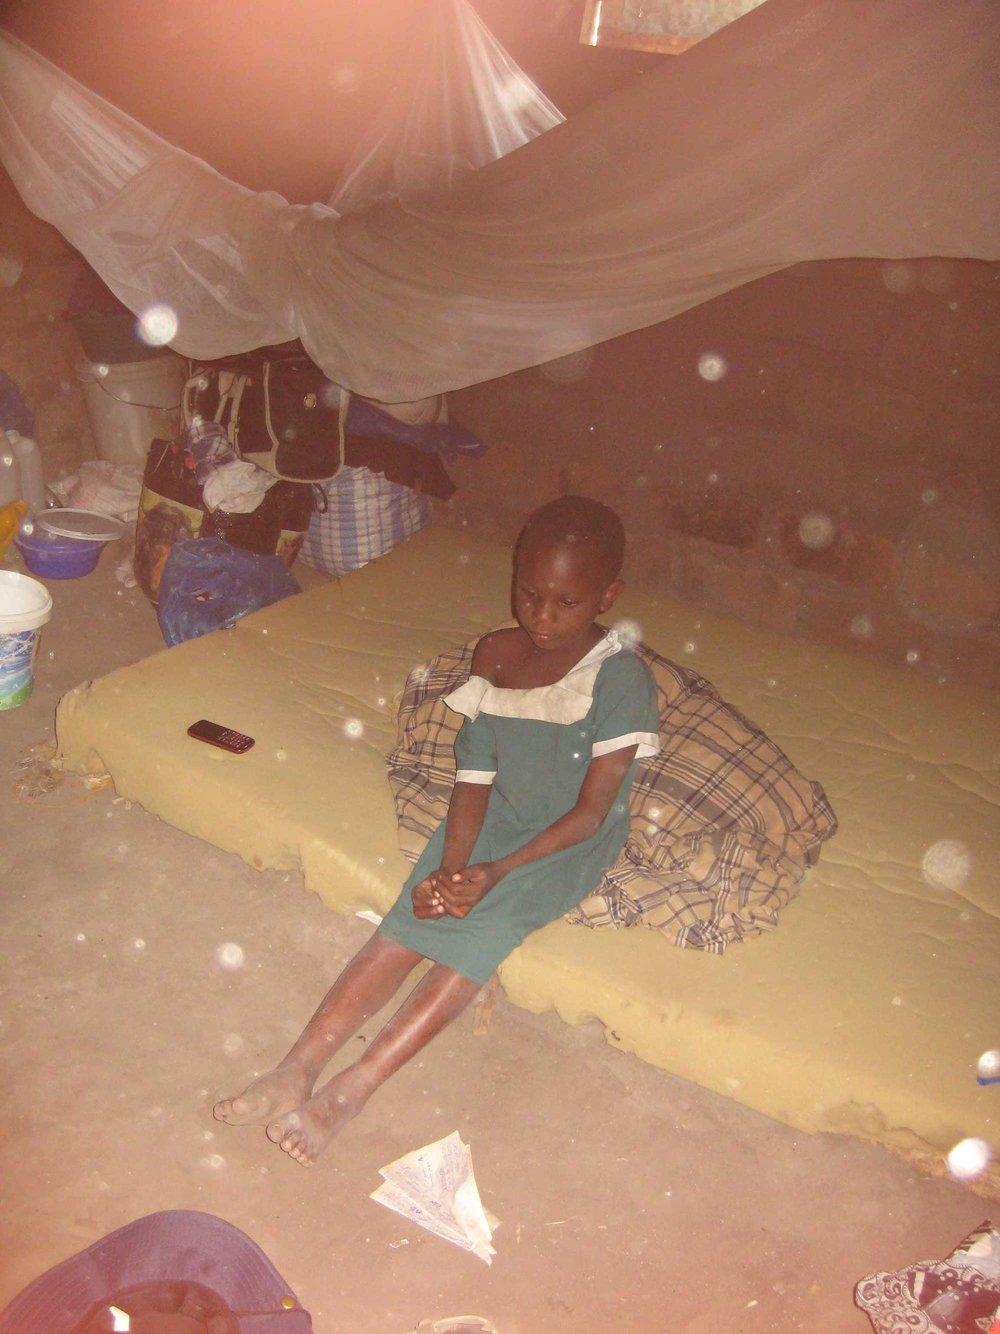 One of her family members sitting on the bed (Photo by Miango ©)